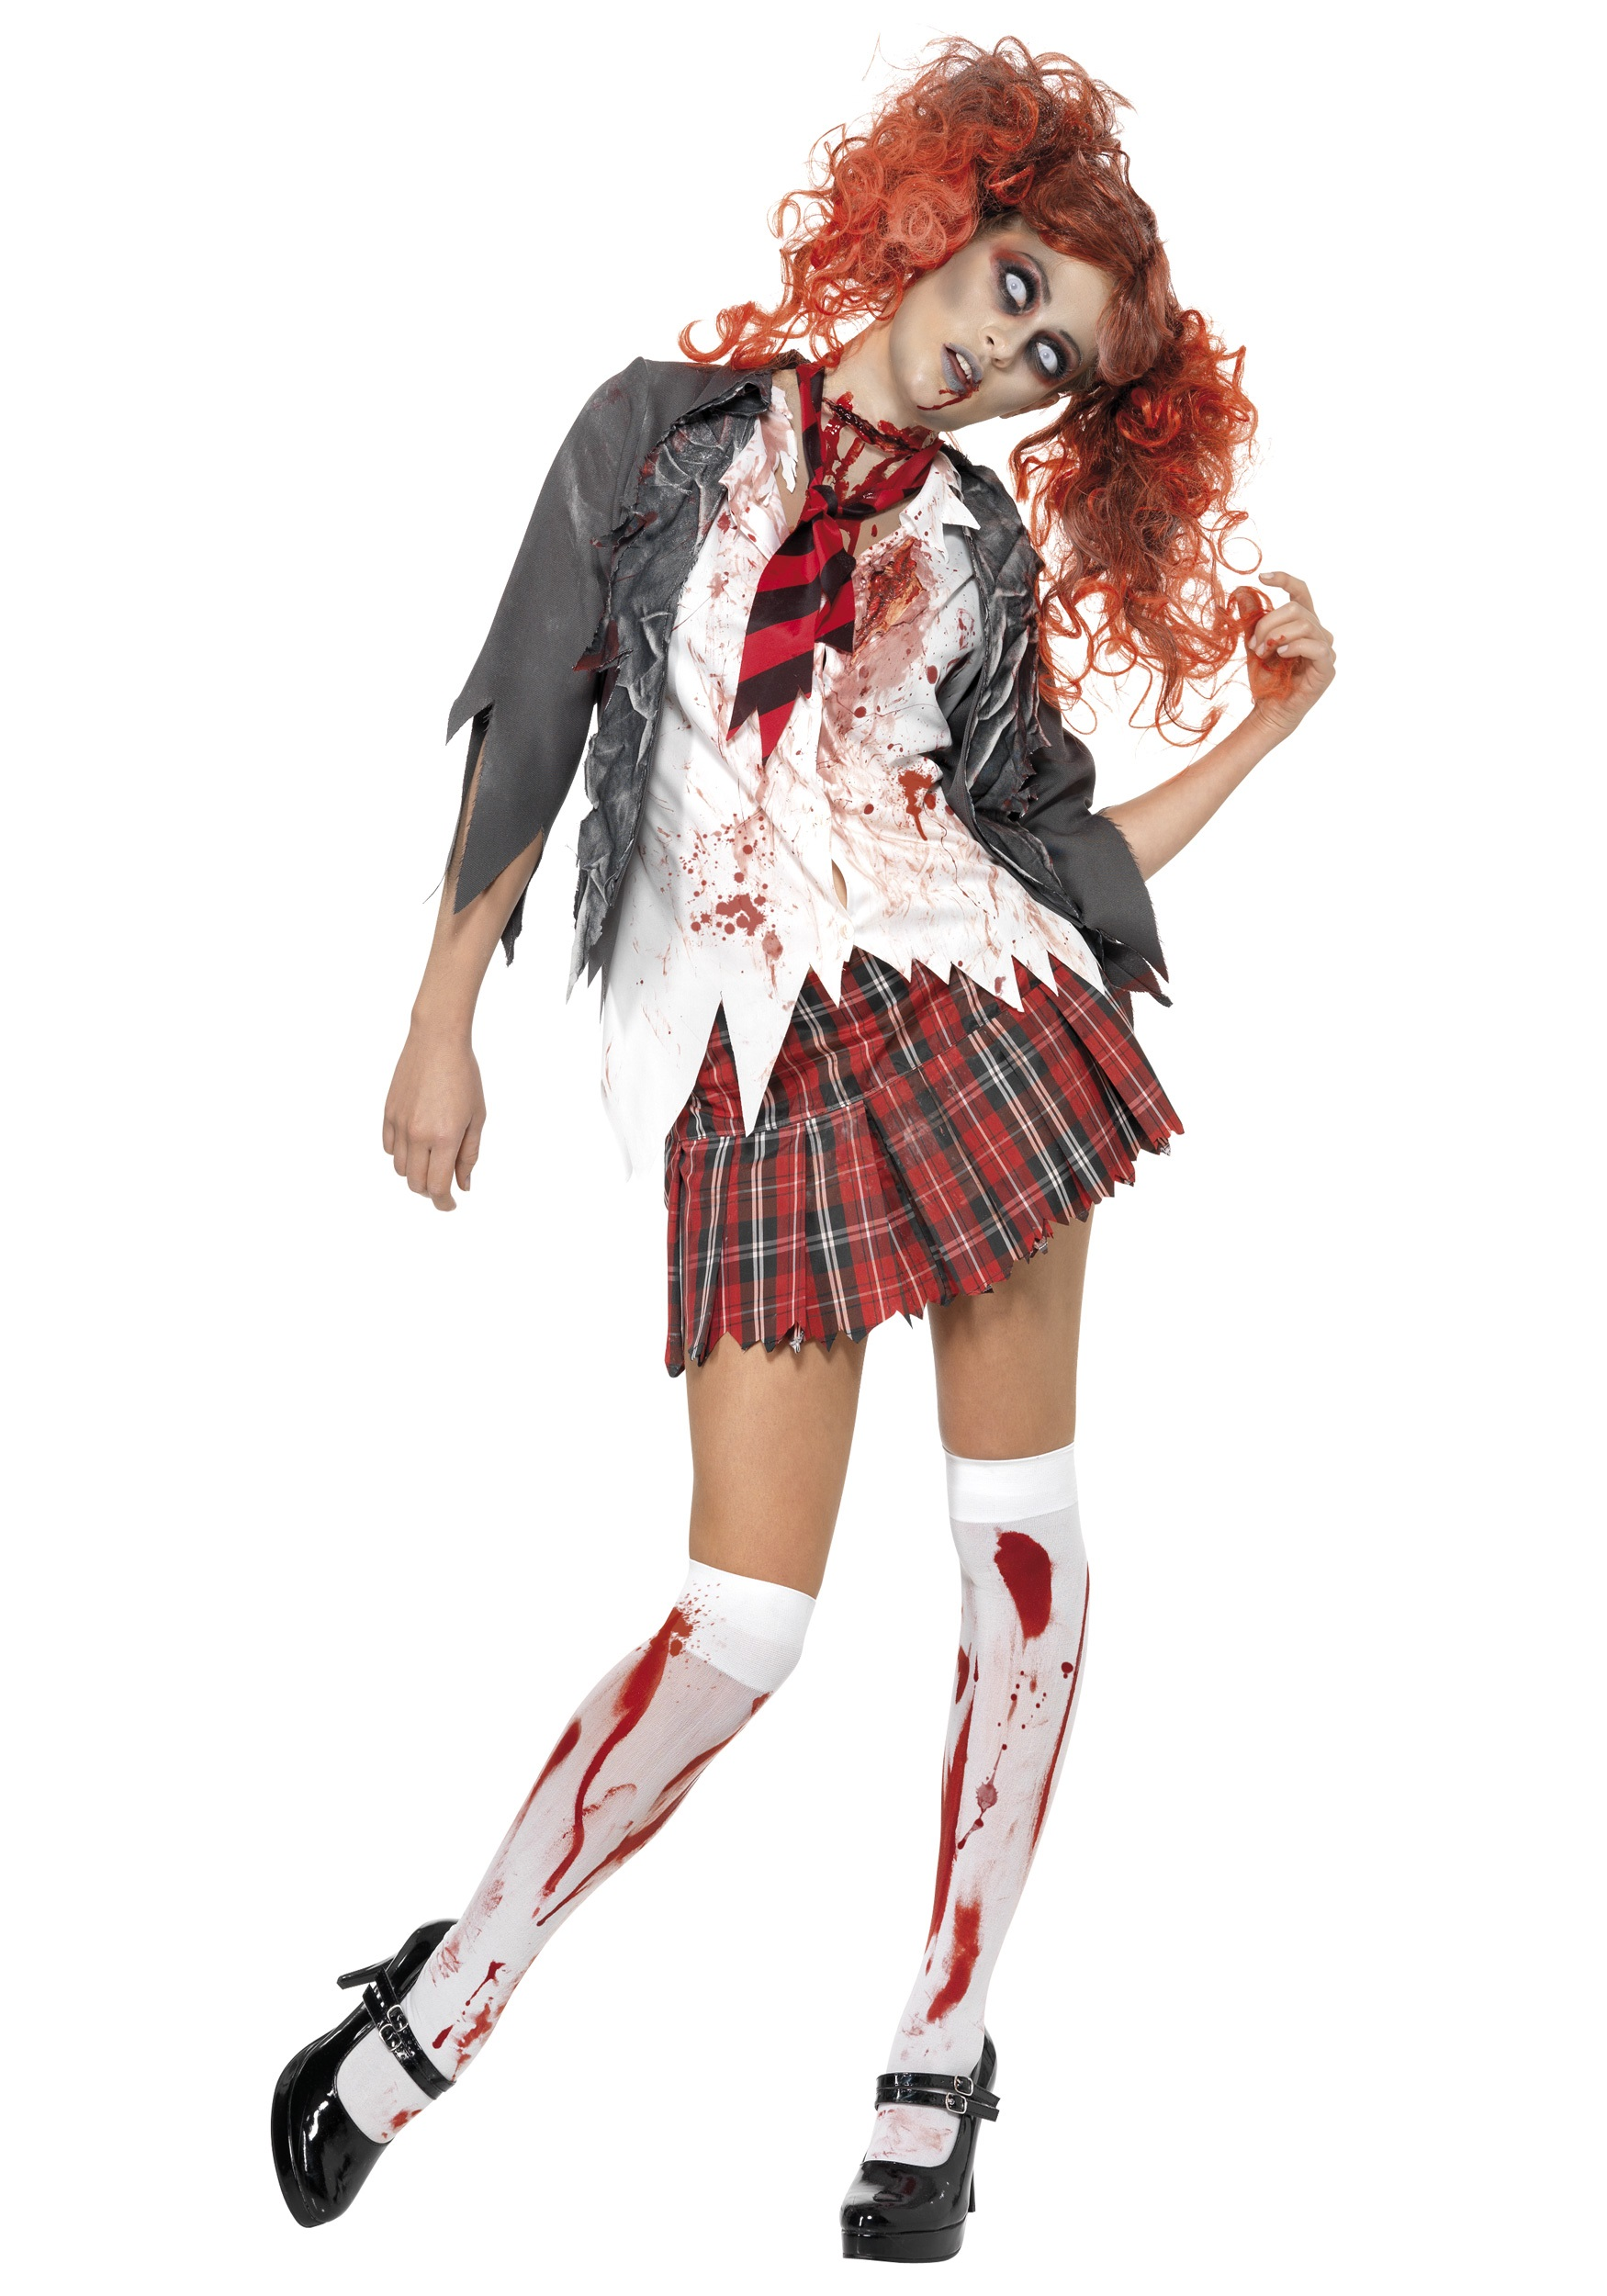 scary halloween costume ideas adult kids scary halloween costumes scary halloween costume ideas adult kids scary halloween costumes